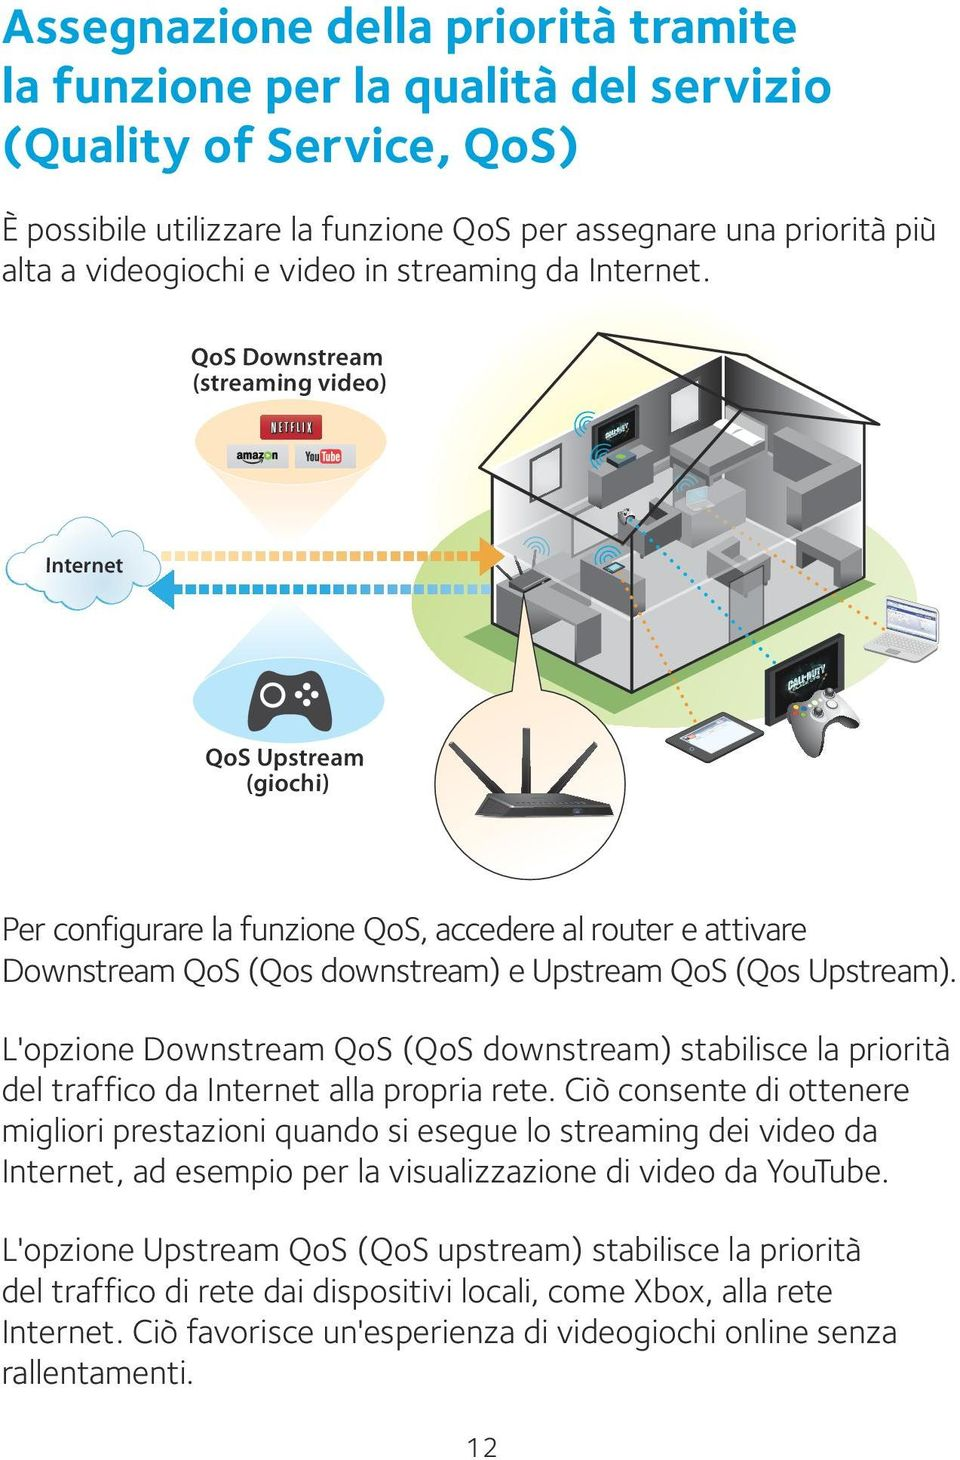 QoS Downstream (streaming video) Internet QoS Upstream (giochi) Per configurare la funzione QoS, accedere al router e attivare Downstream QoS (Qos downstream) e Upstream QoS (Qos Upstream).